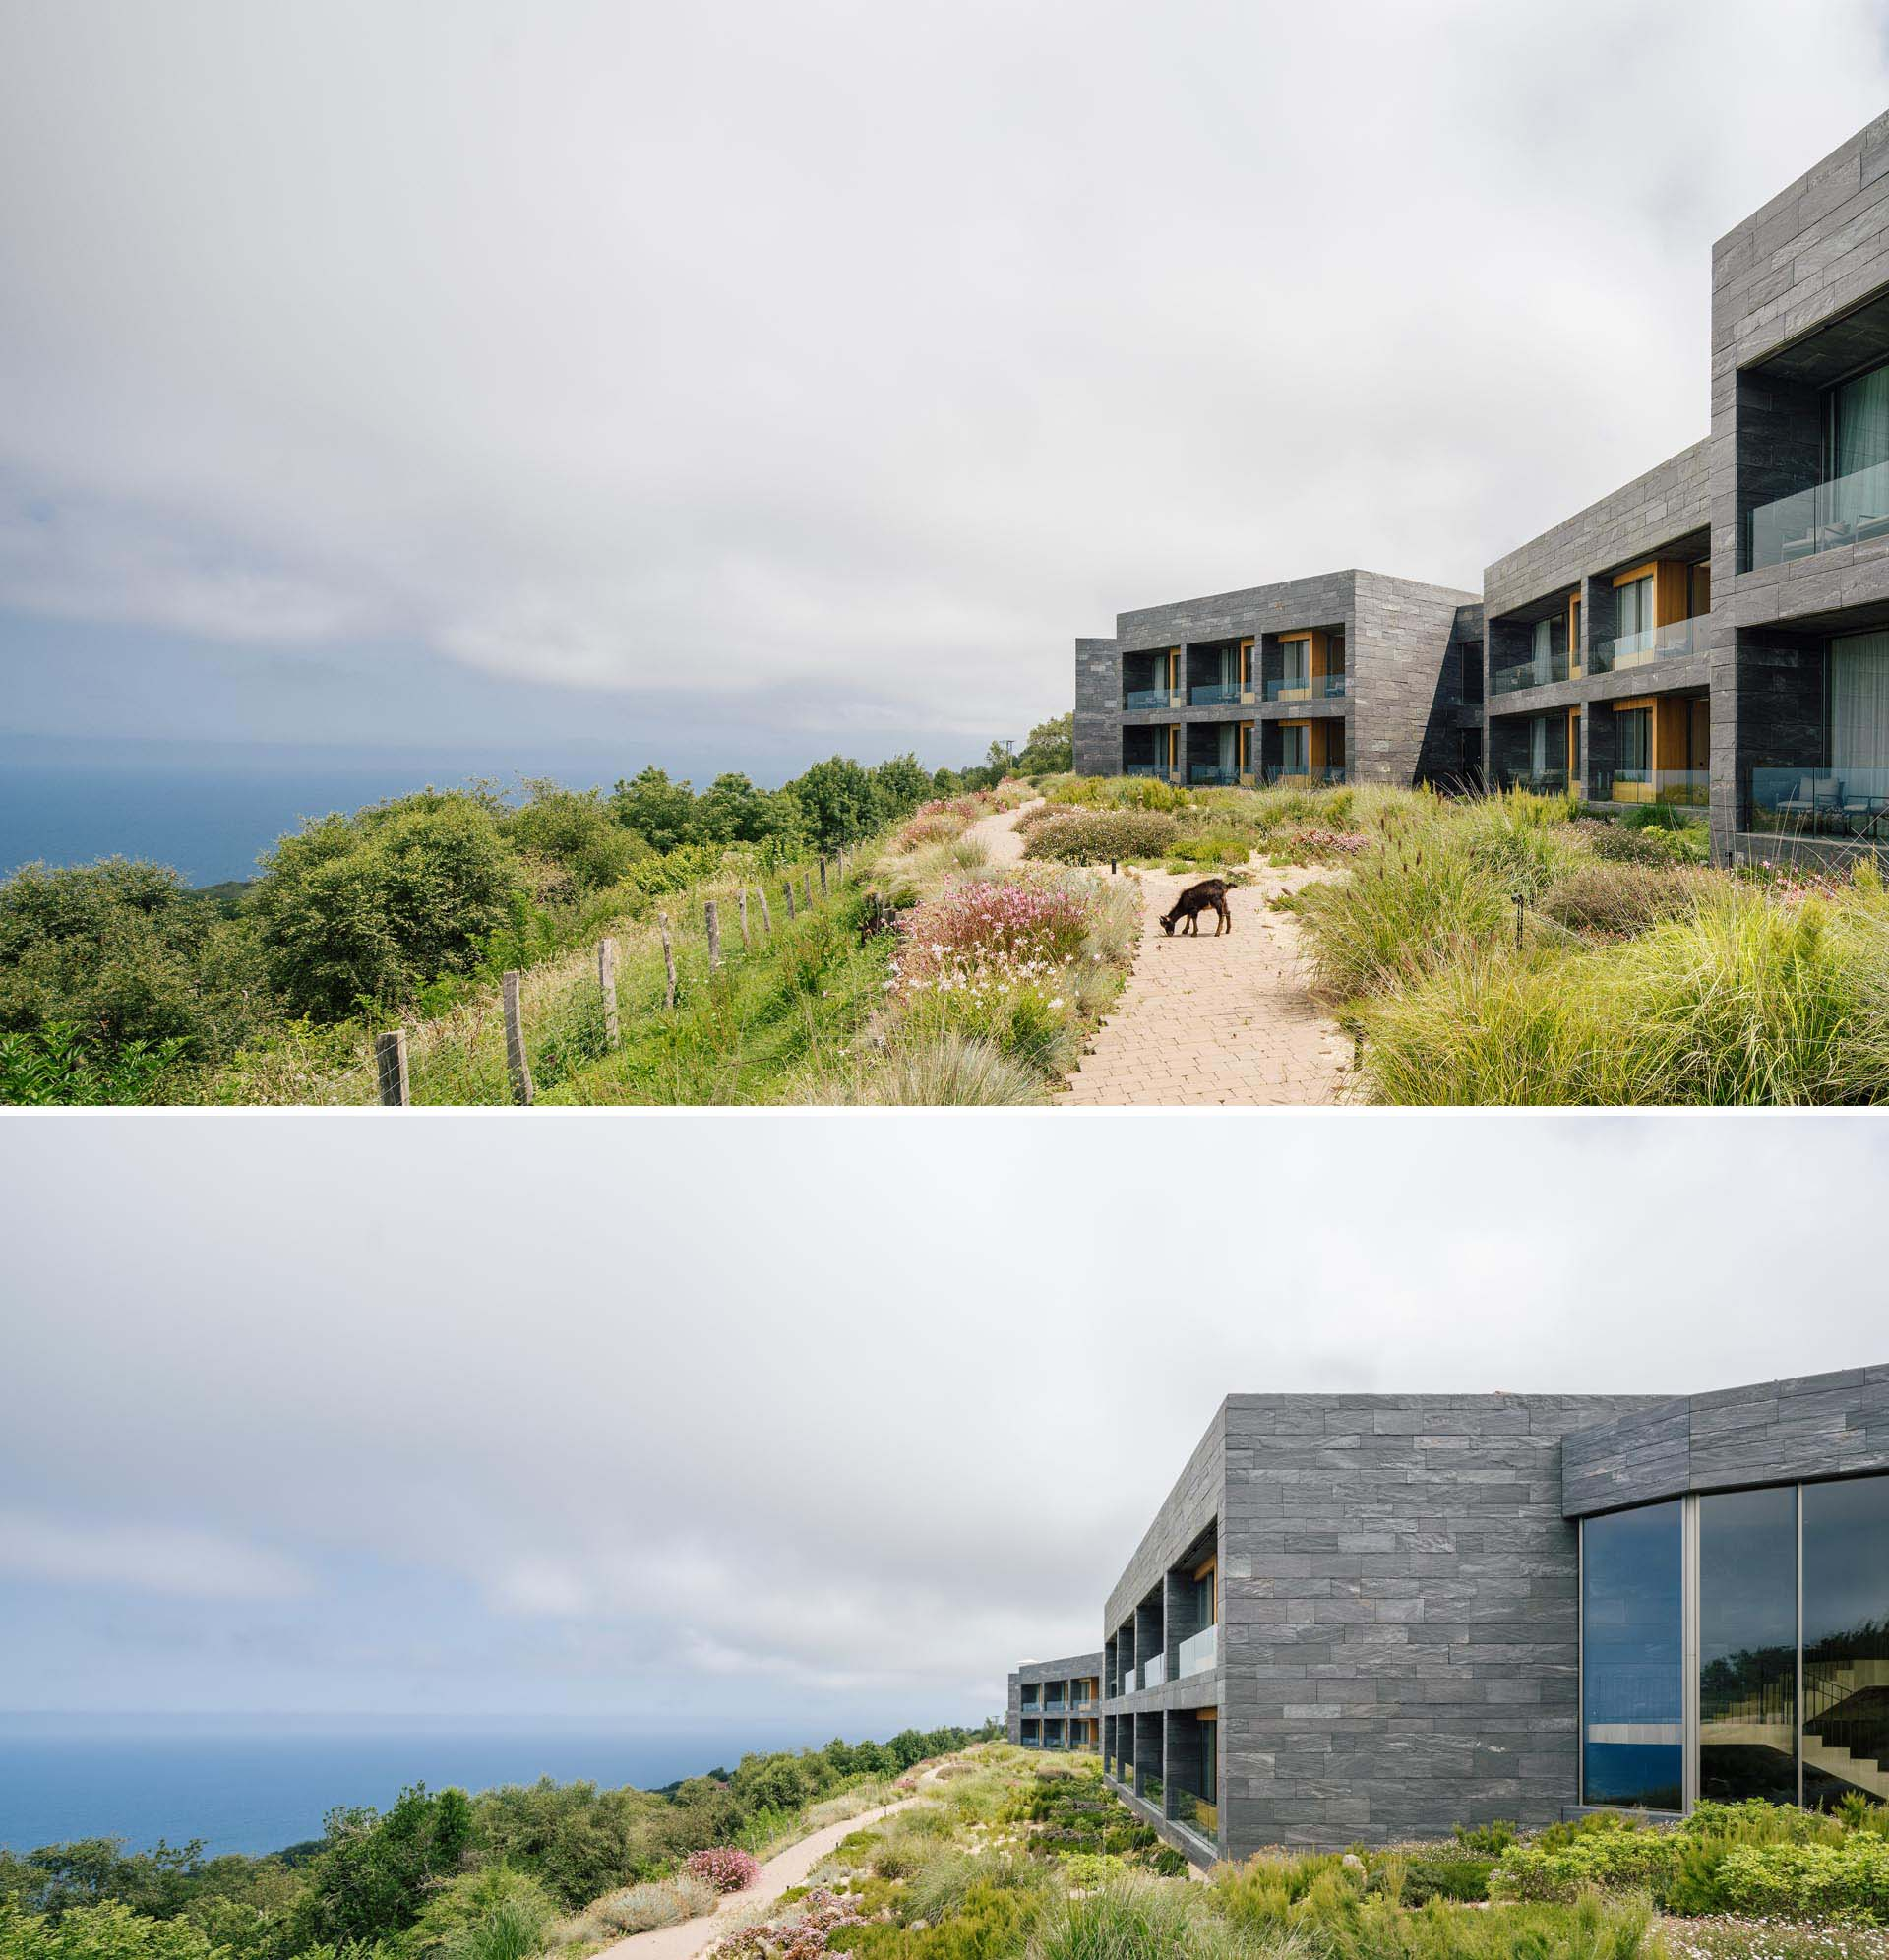 Located on the coast of Spain, this modern hotel and spa includes materials like stone, wood, and glass, with the rooms focused on the view.